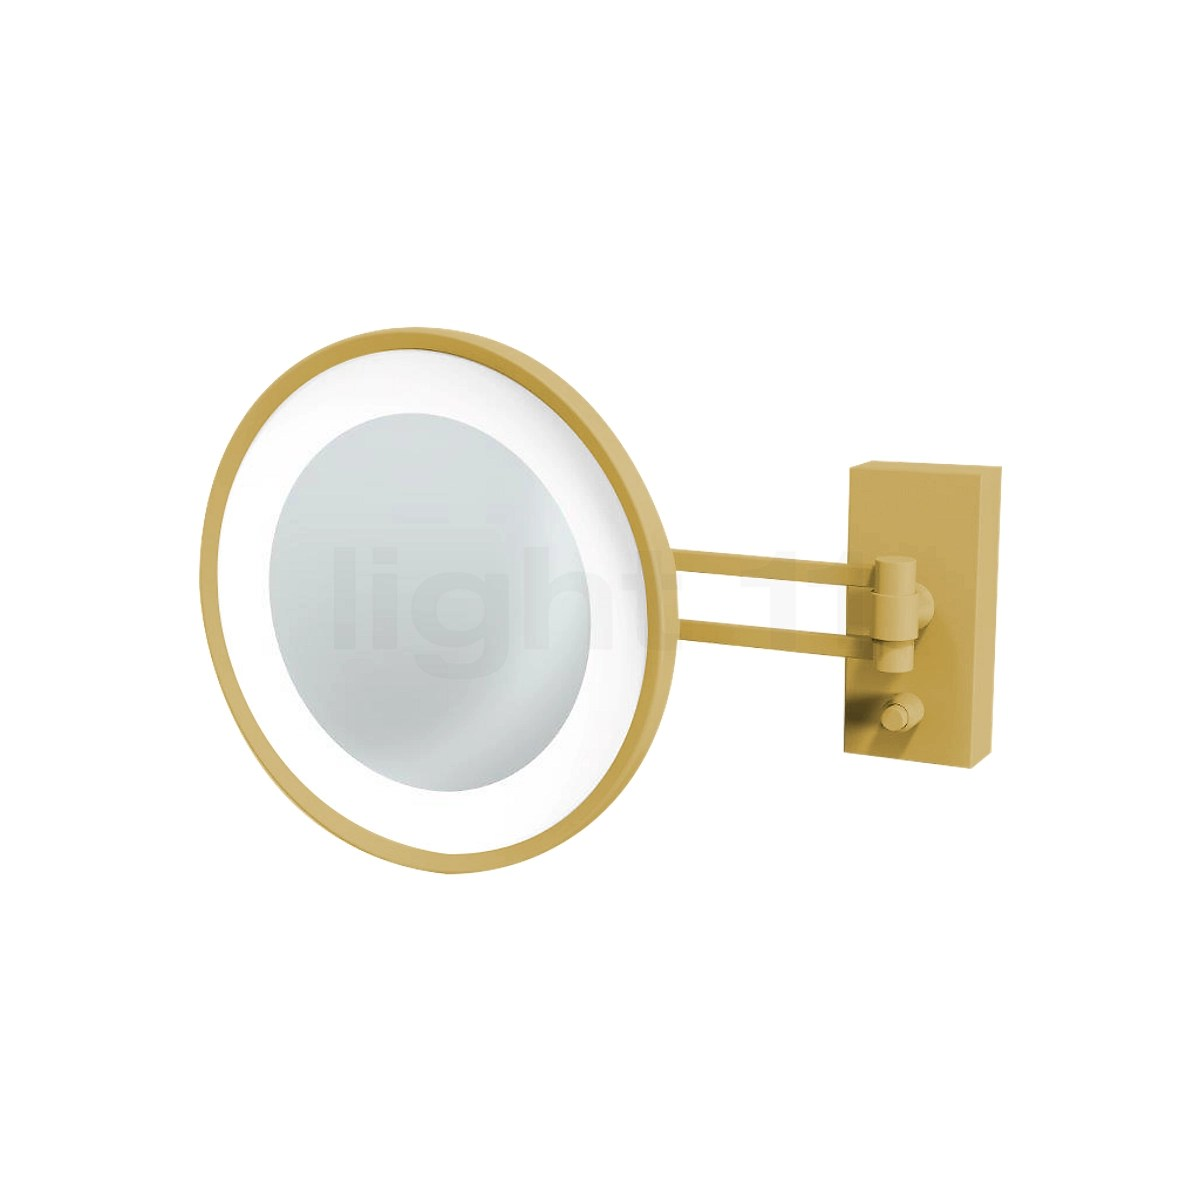 decor walther bs 36 wall mounted cosmetic mirror led